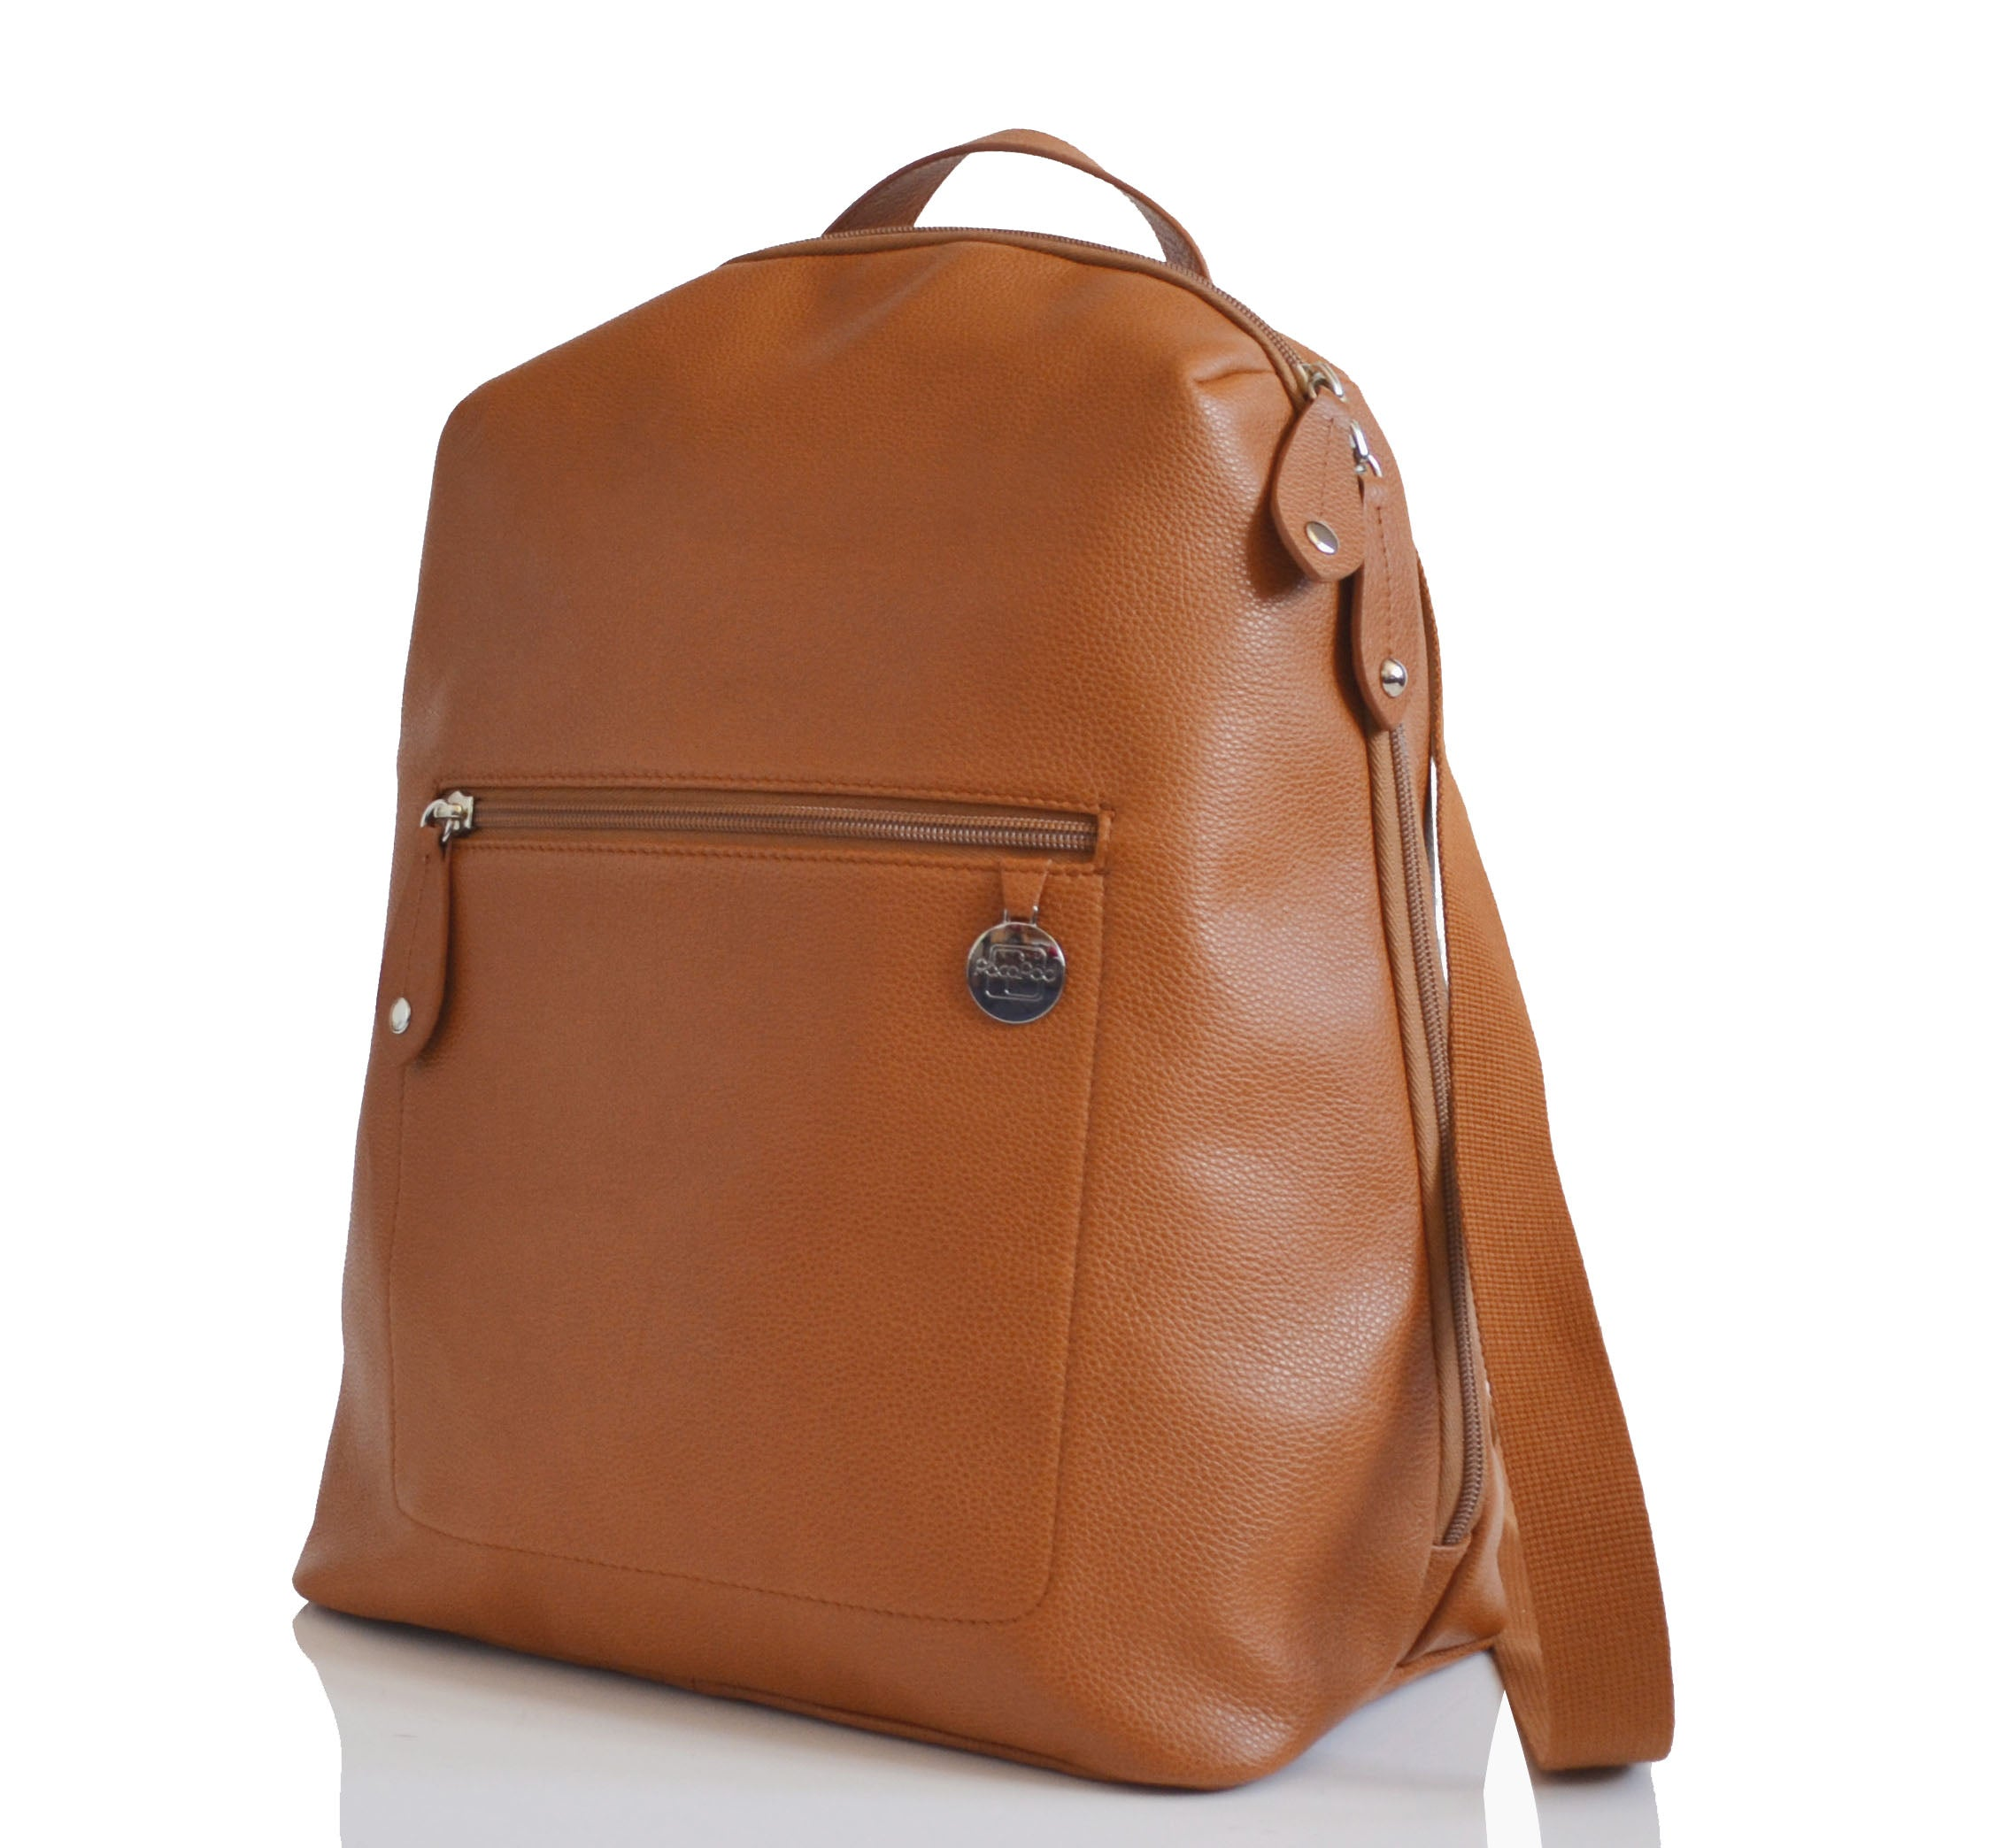 Hartland Leather - tan